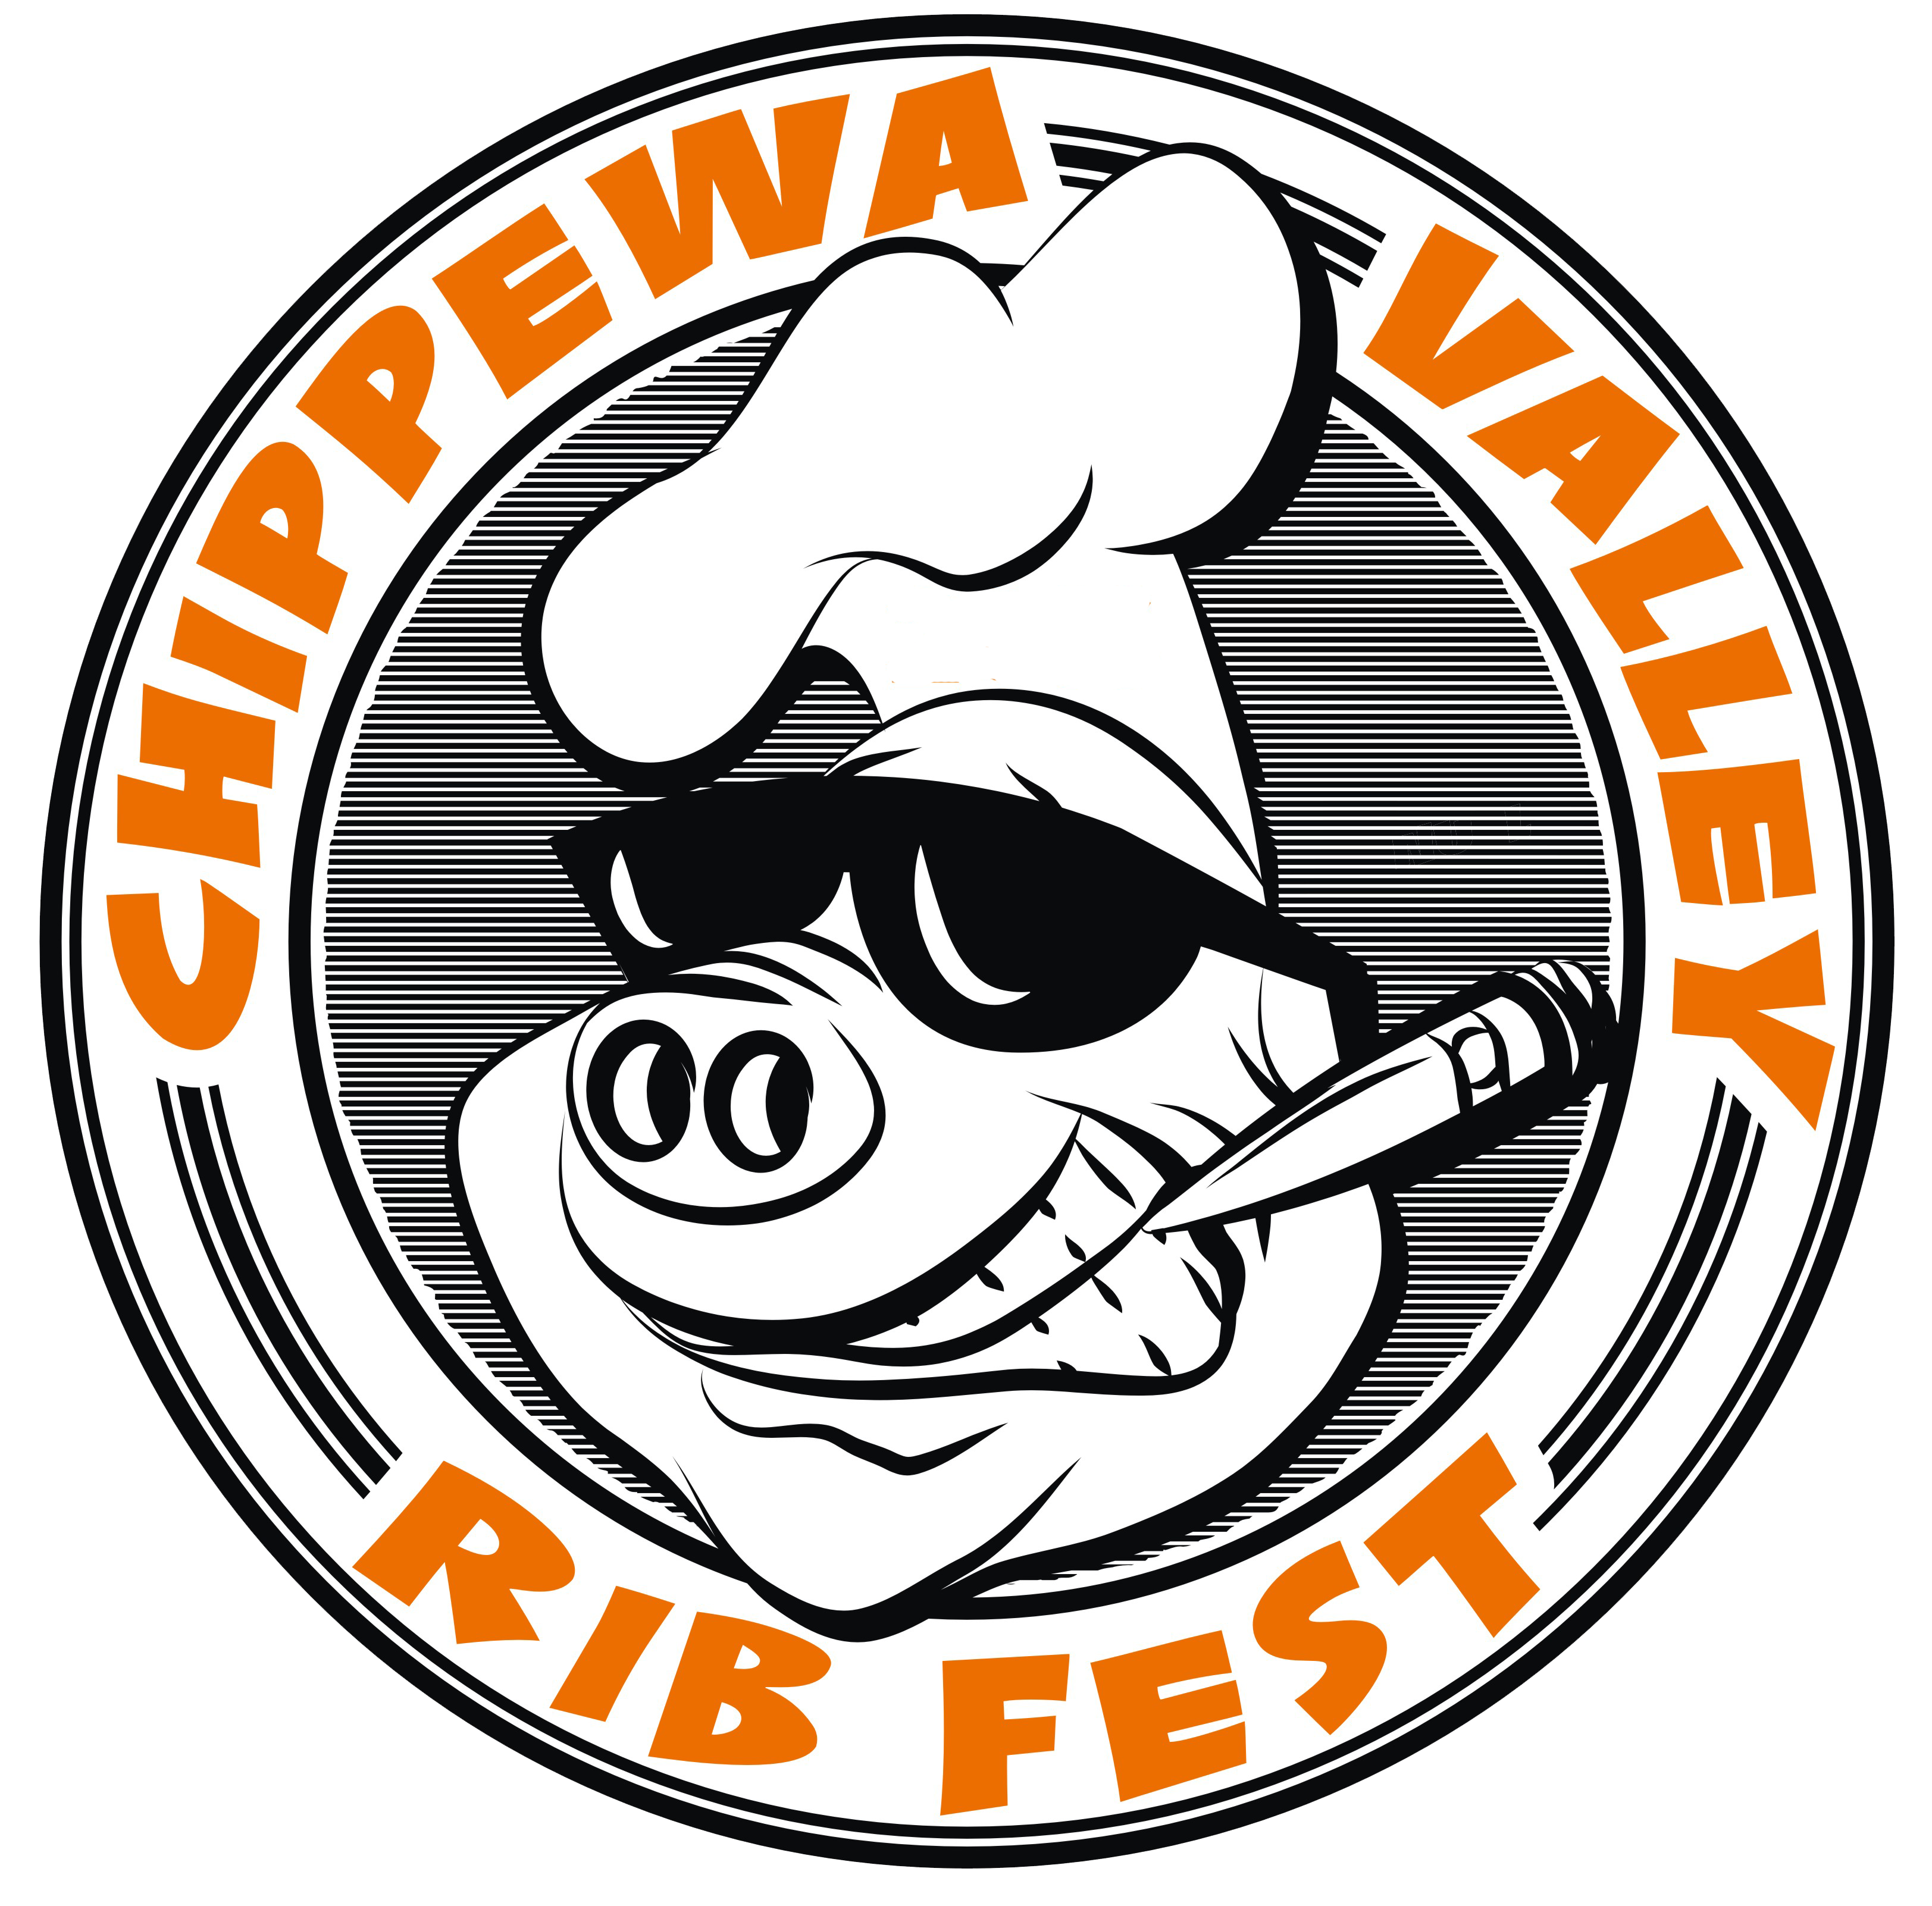 92 9 The X Is Proud To Be Apart Of 7th Annual Chippewa Valley Rib Fest Hening At Swimrite Pools And Spas On Saay May 12th